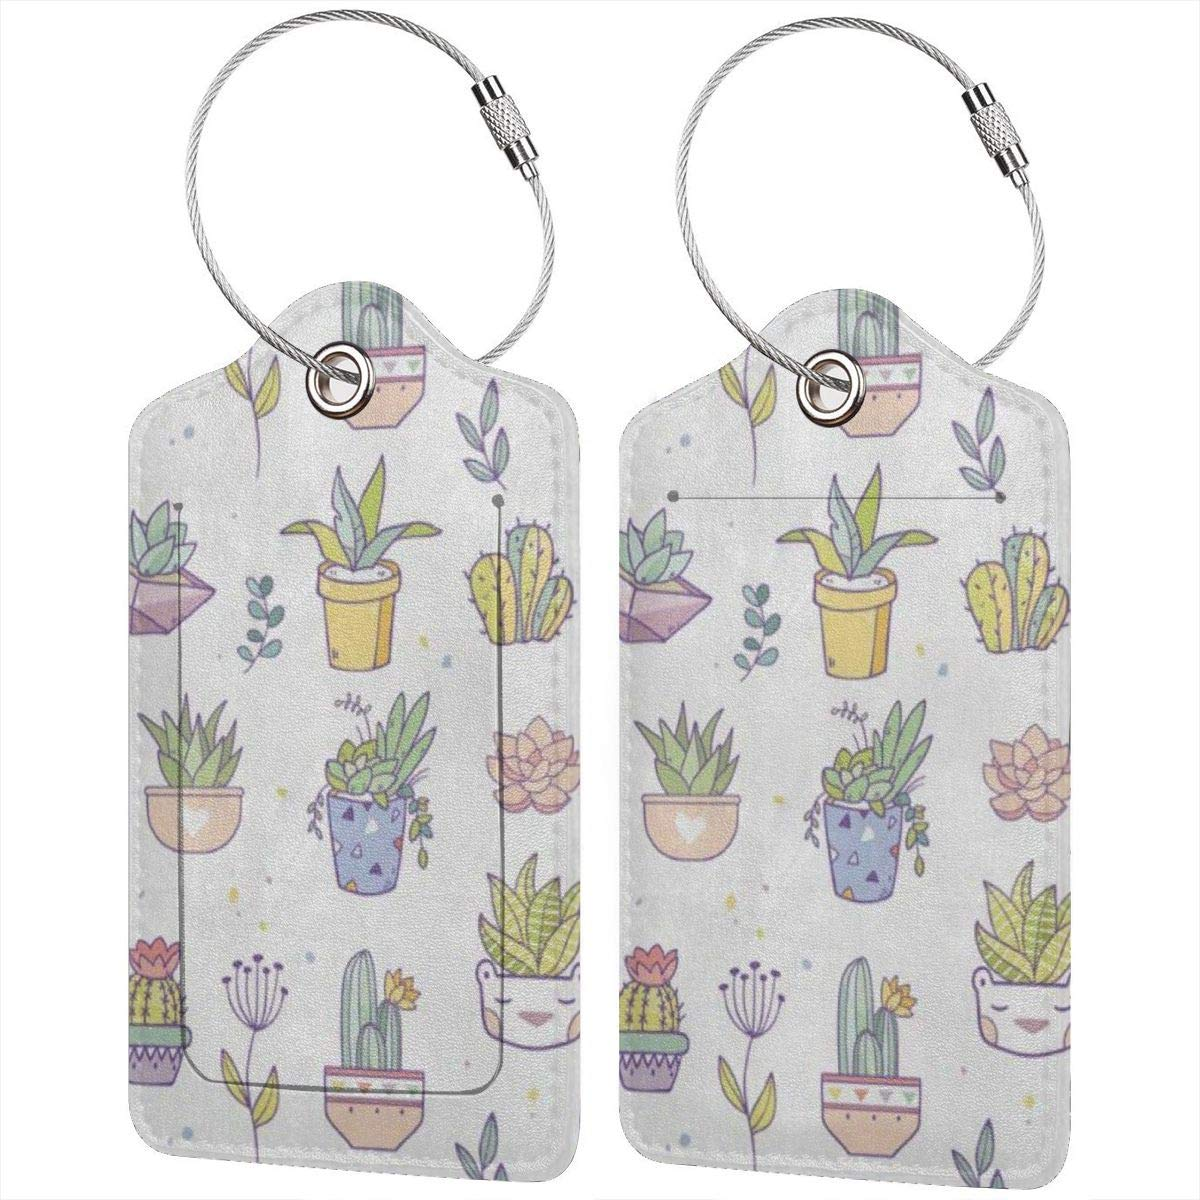 Cute Cactus Succulents Leather Luggage Tags Personalized Address Card With Adjustable Strap